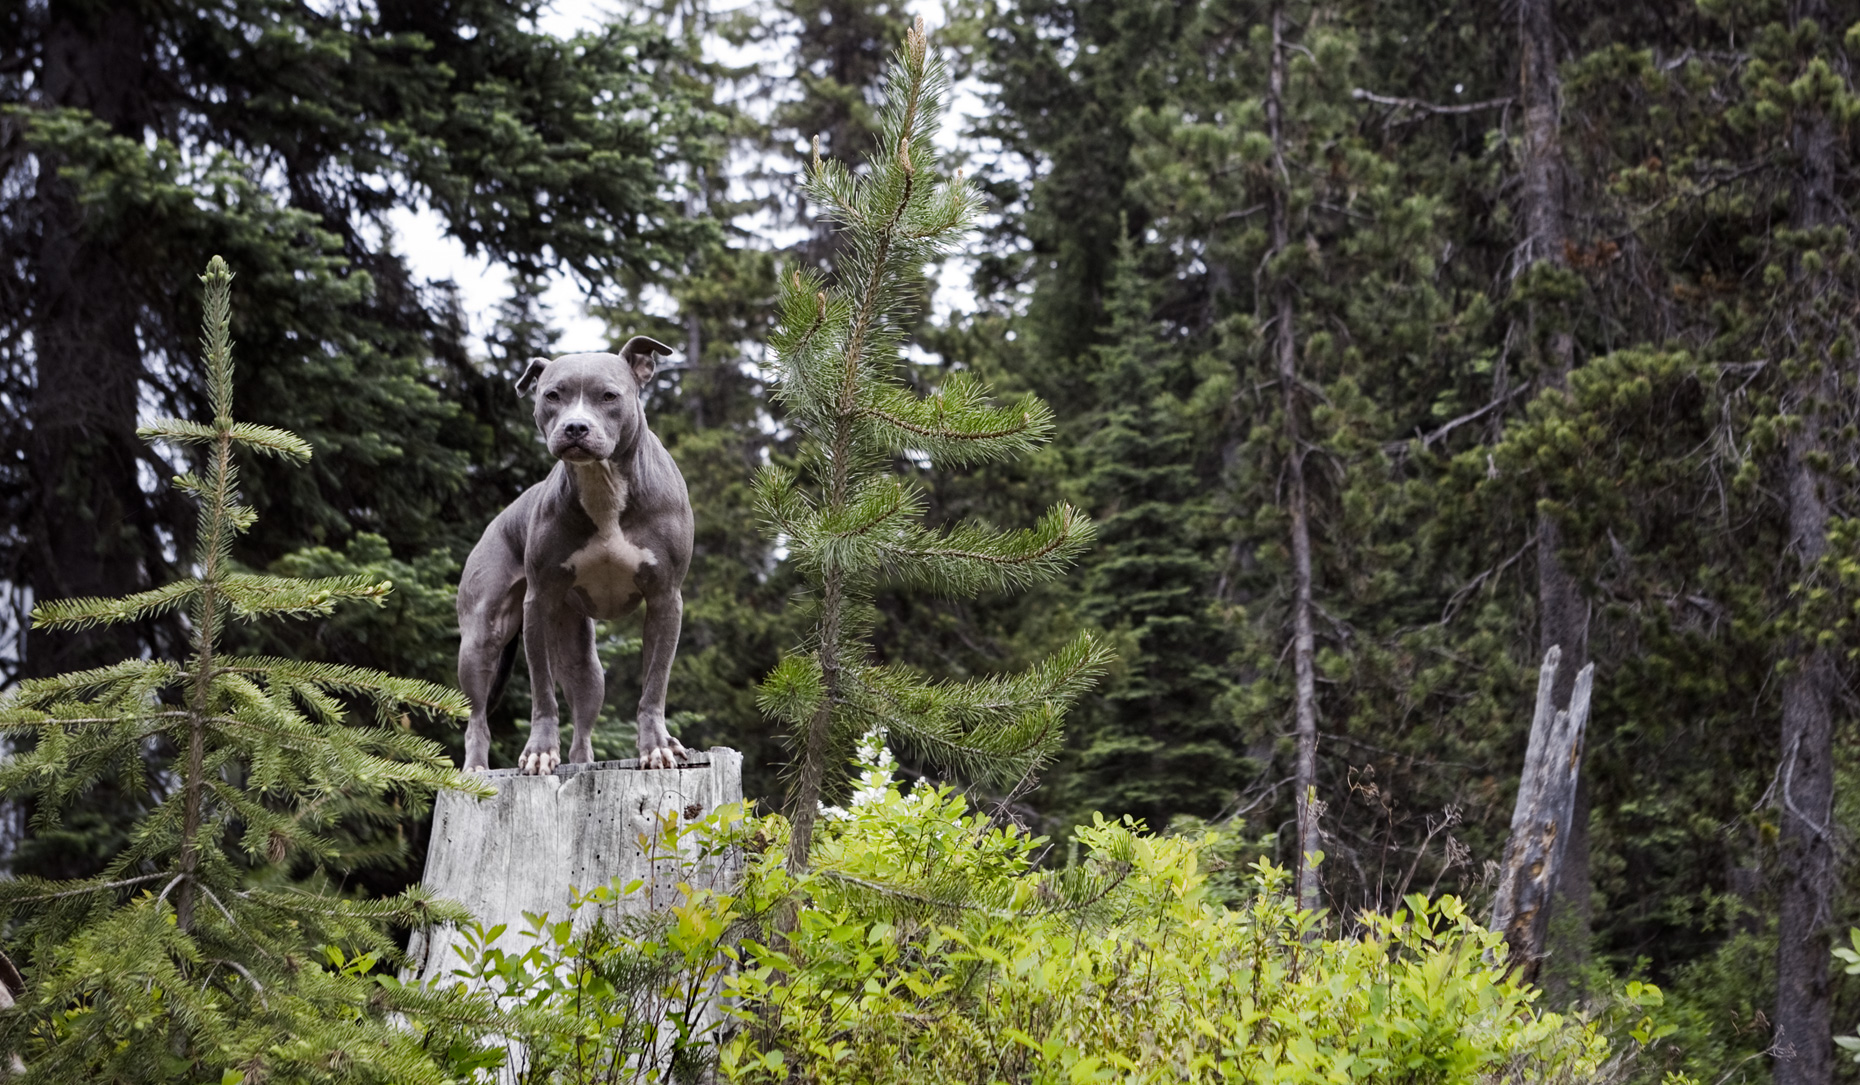 Los Angeles Dog Photography, Michael Brian, Blue Nose Pit Bull Kasha Fierce on tree stump in woods